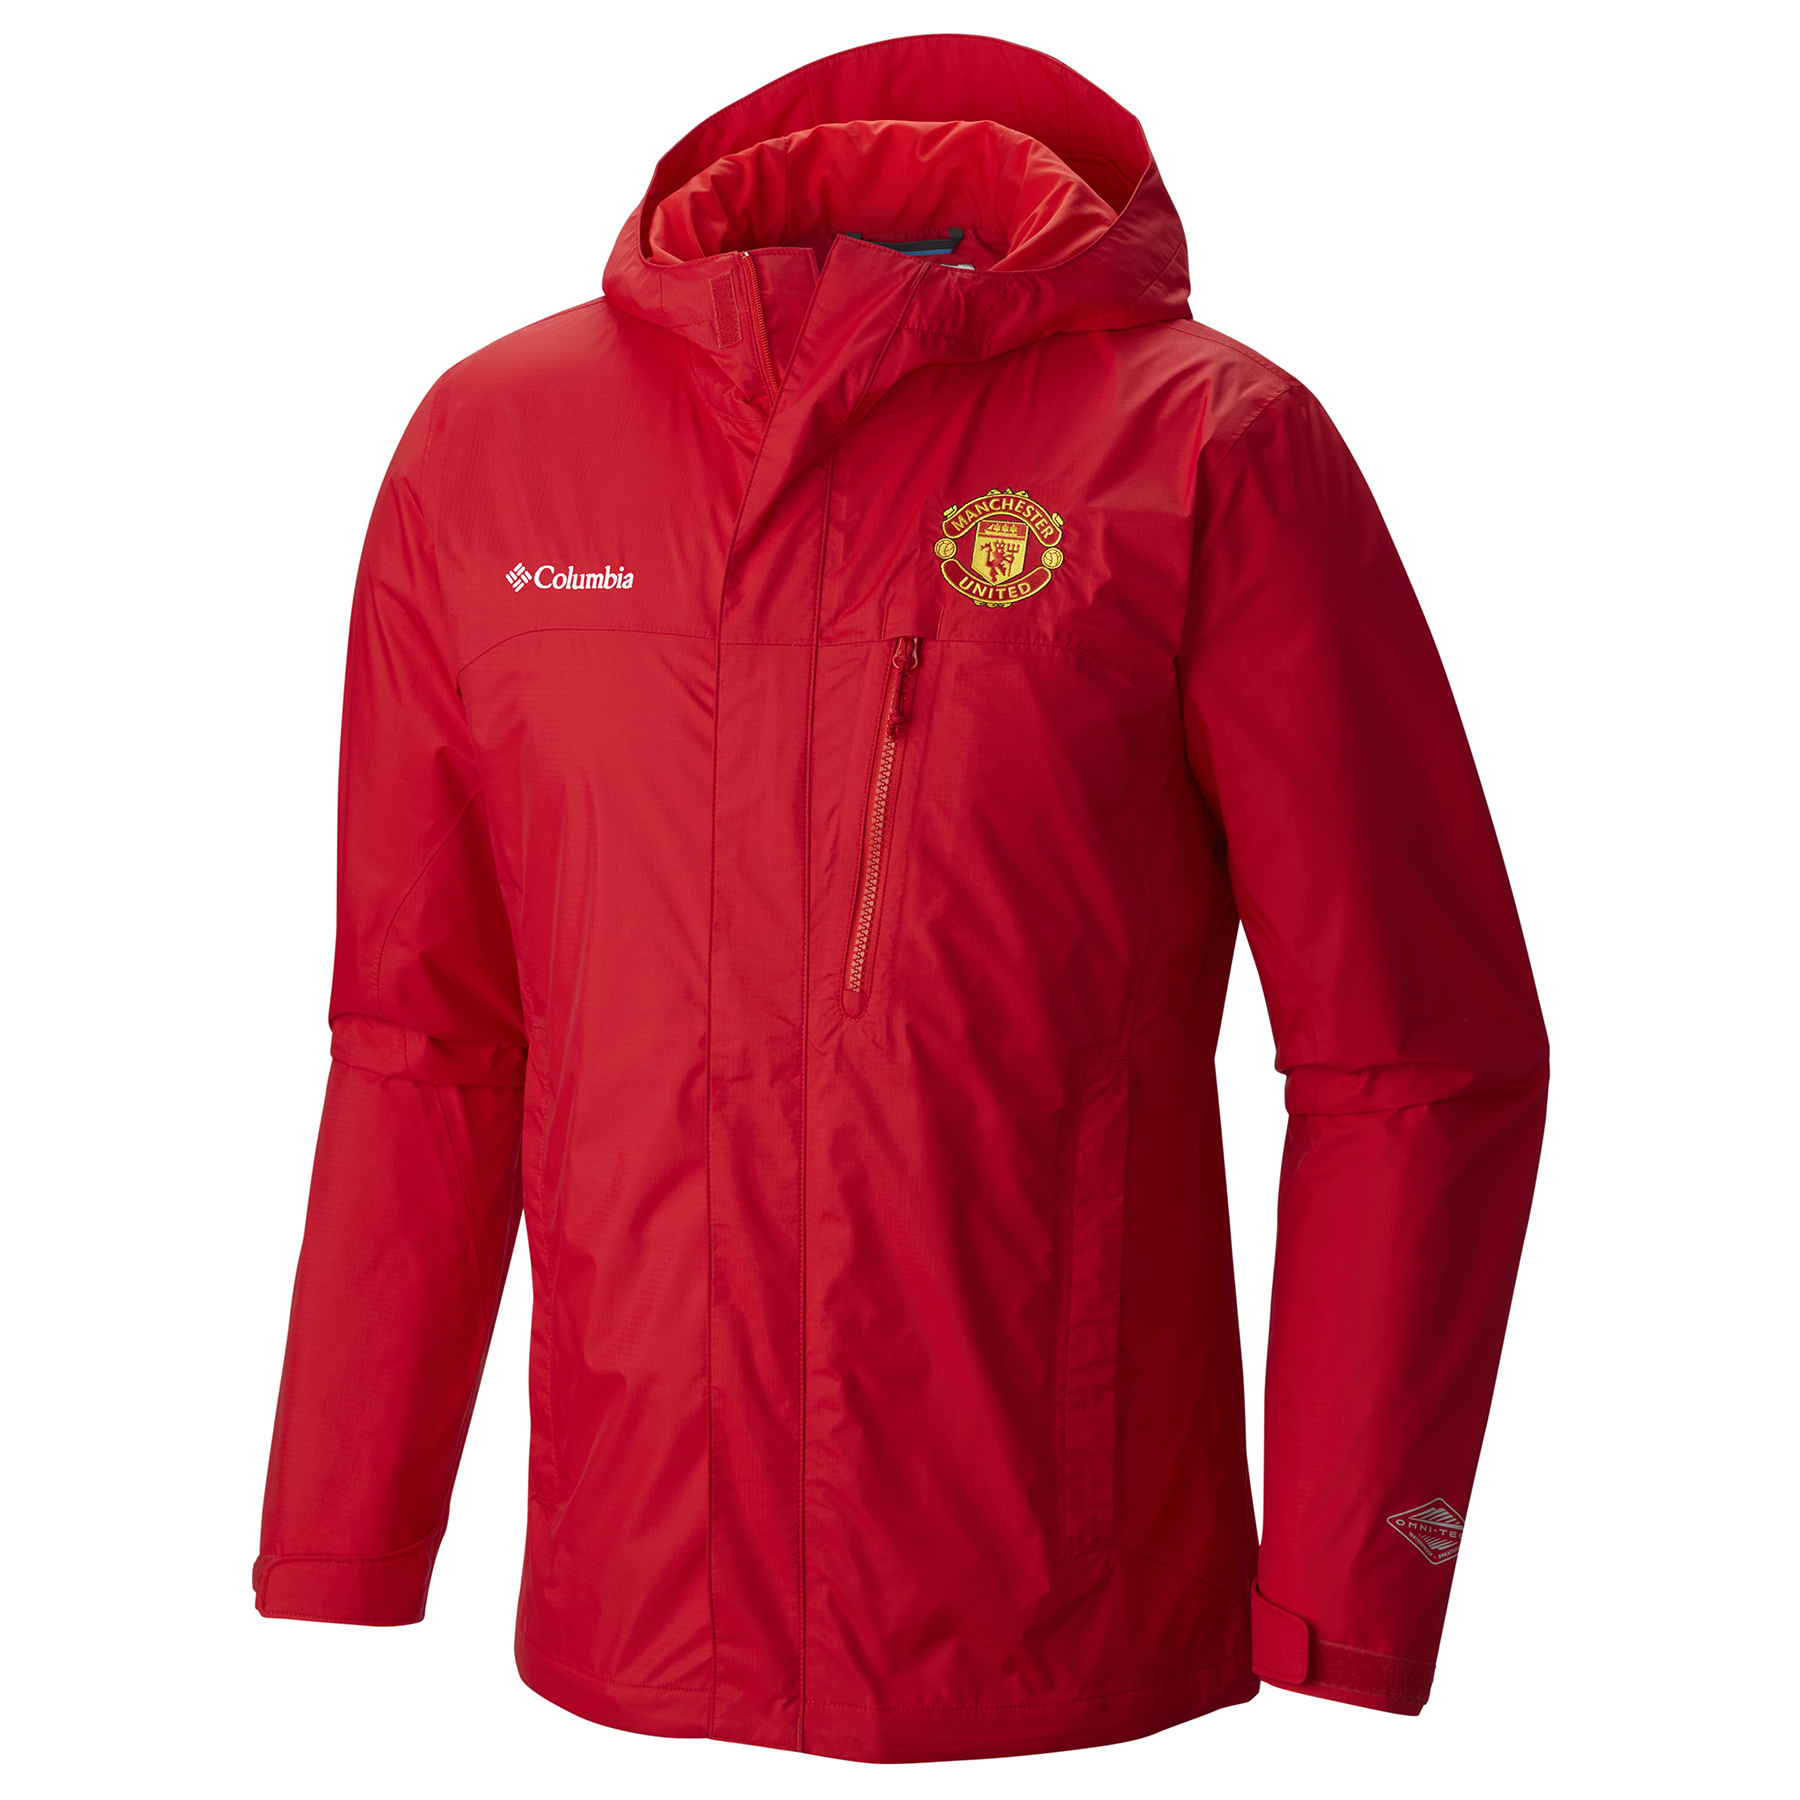 Veste Columbia Pouring Adventure Manchester United - Rouge - Homme